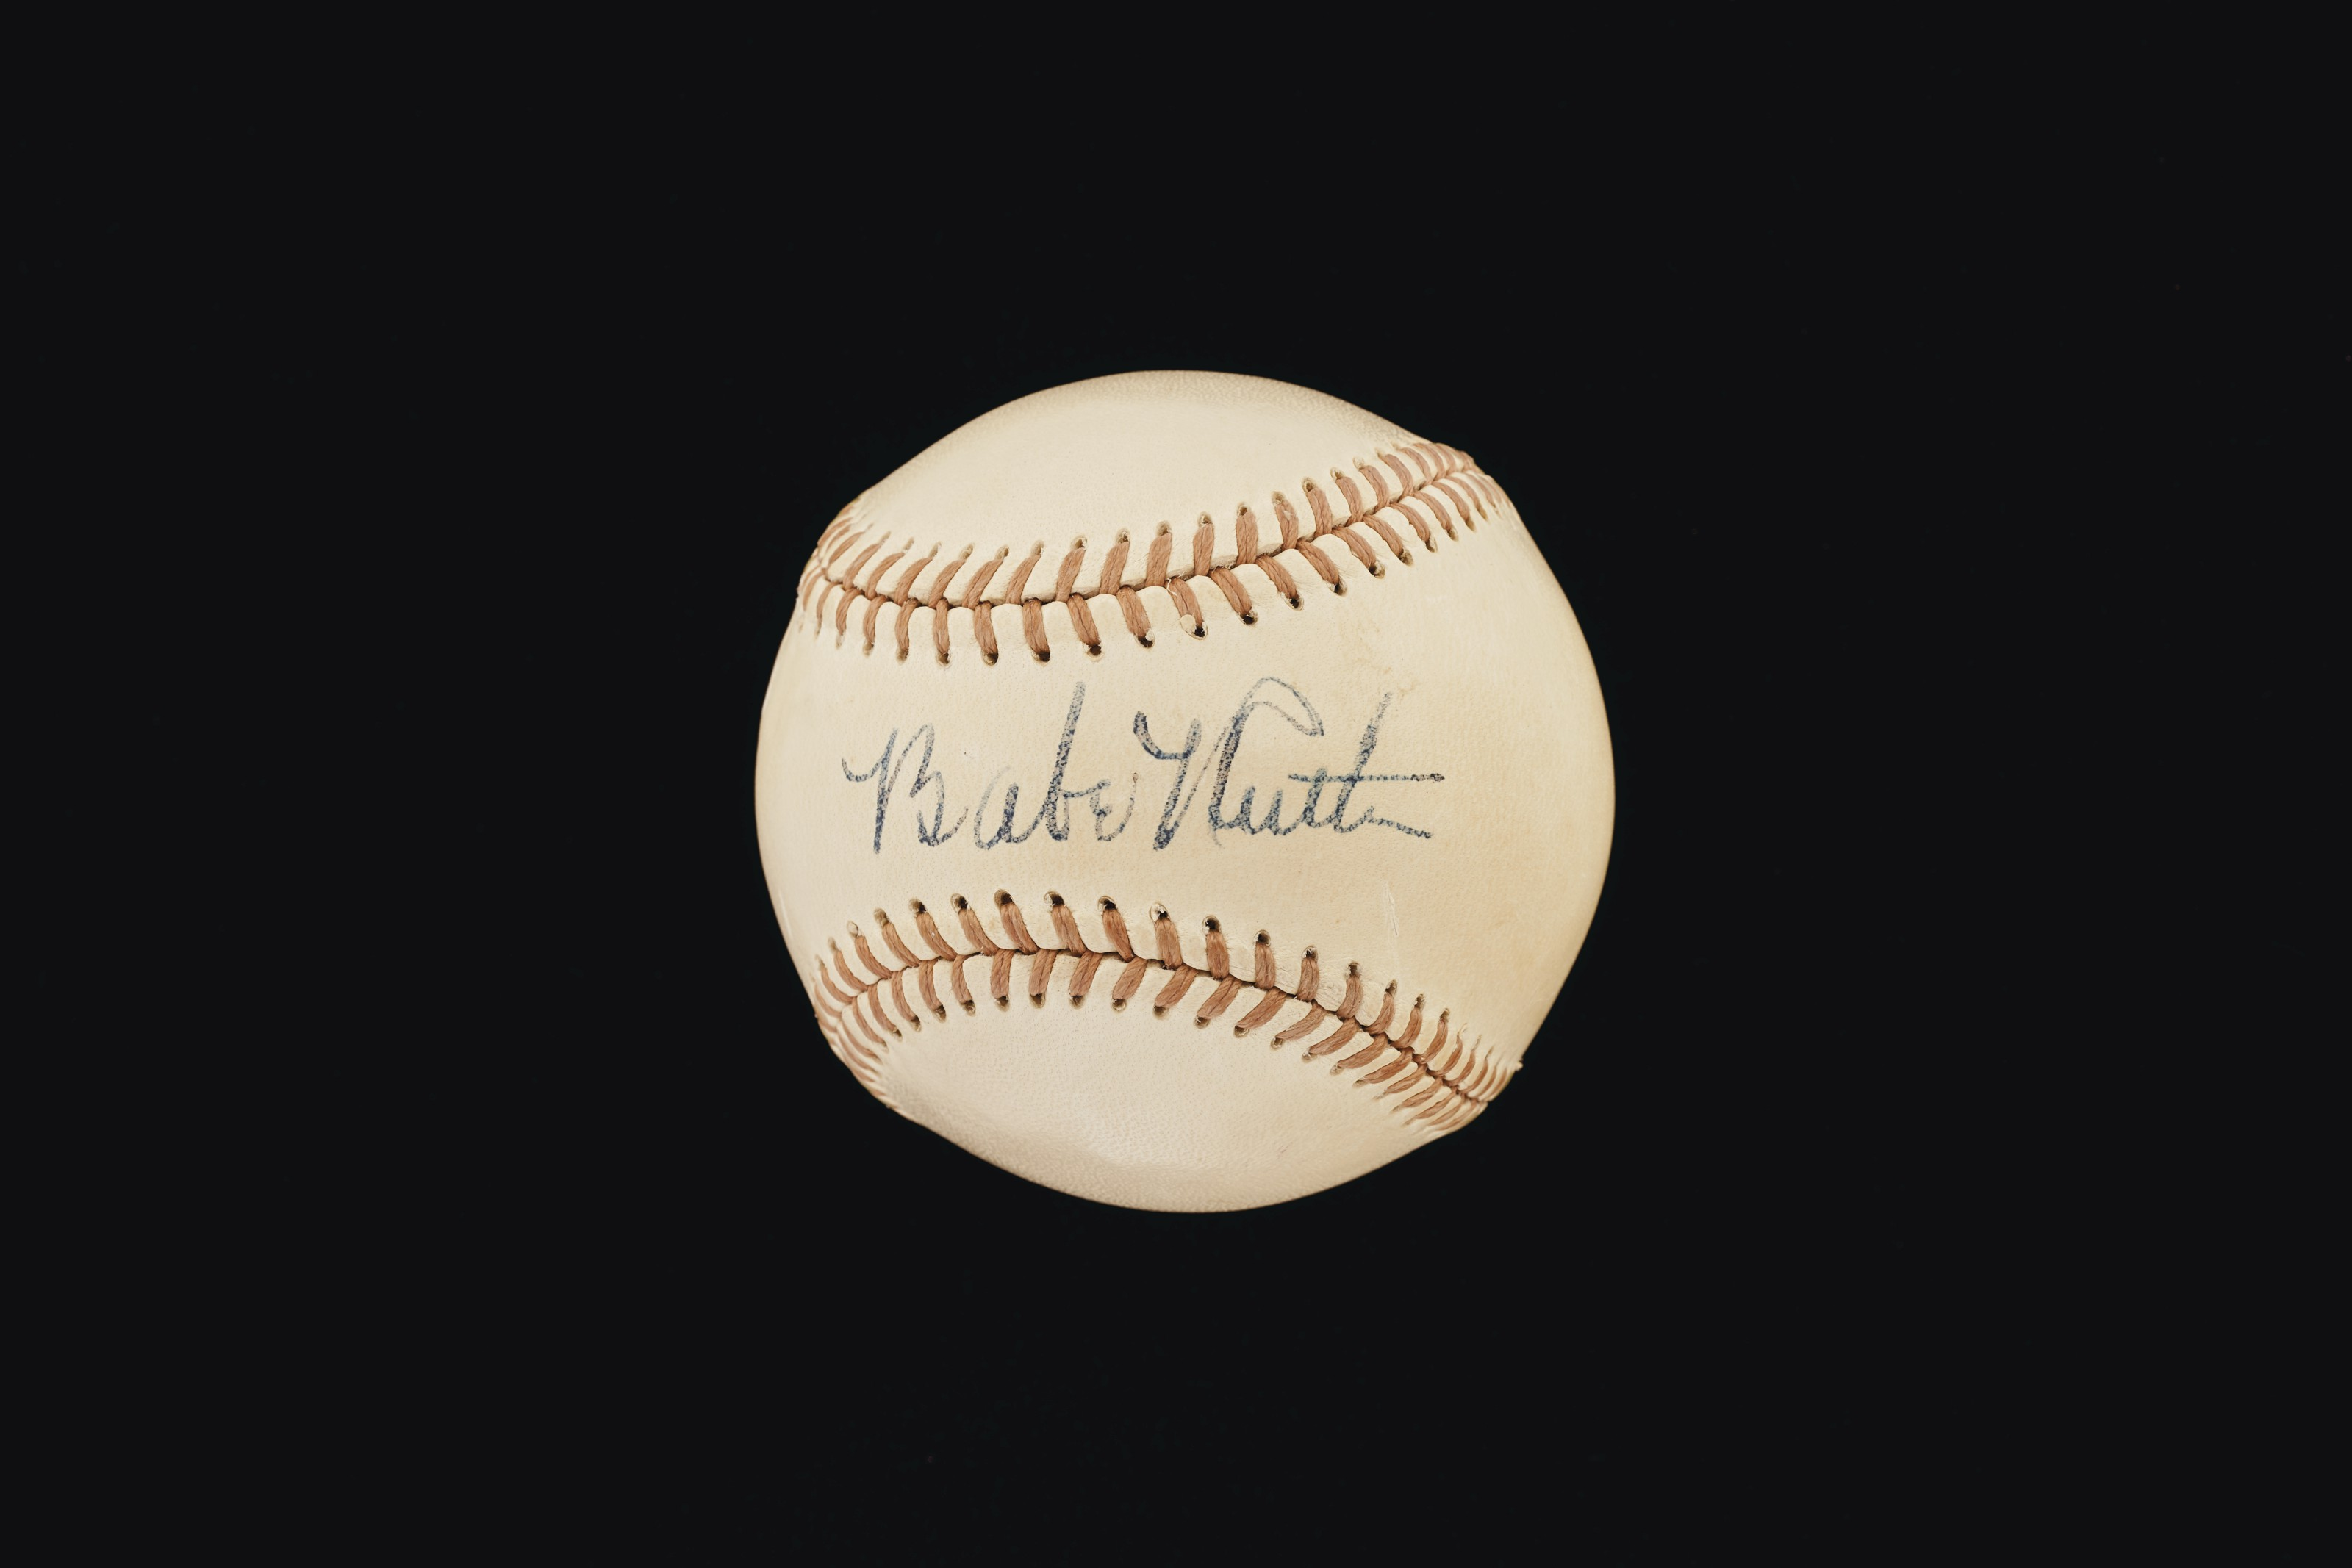 Very fine Babe Ruth Single Signed Baseball c.1940s (PSA/DNA 7 NM)